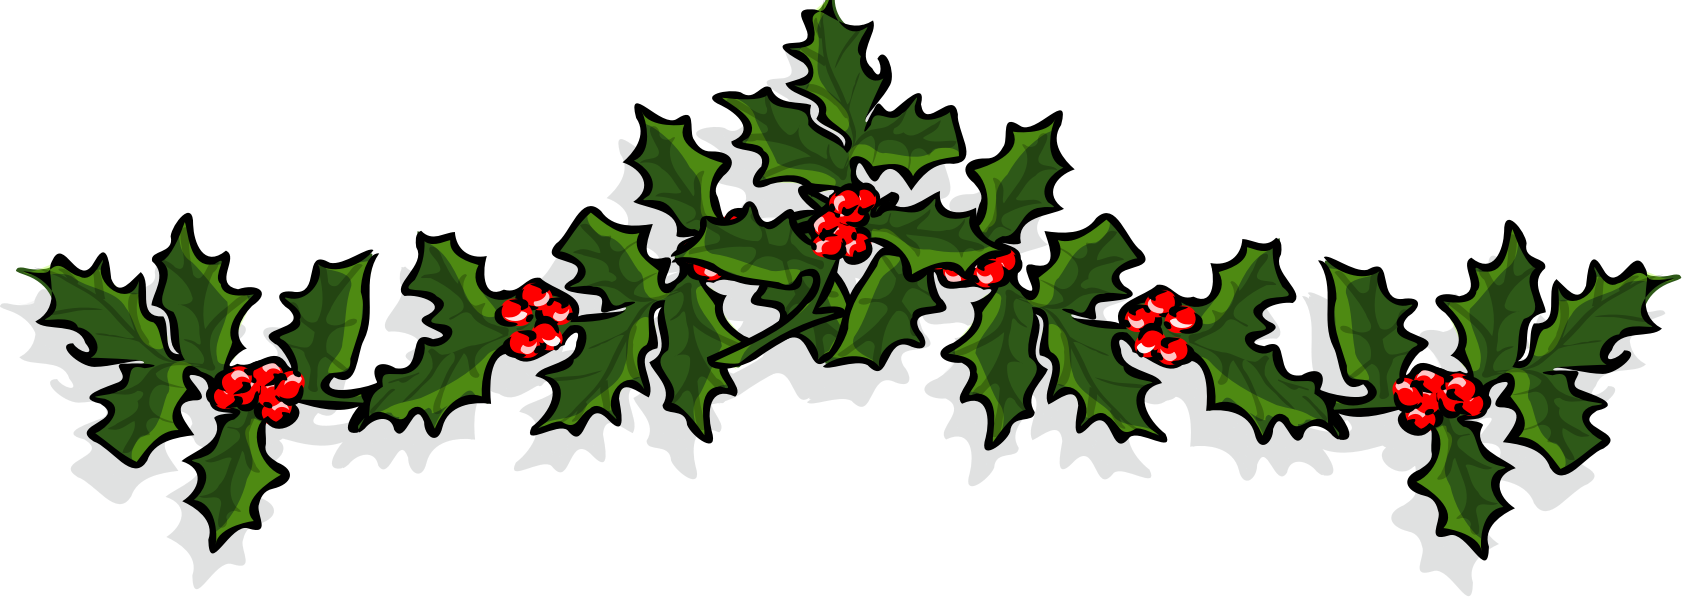 Icons png free and. Transparent holly holiday vector download